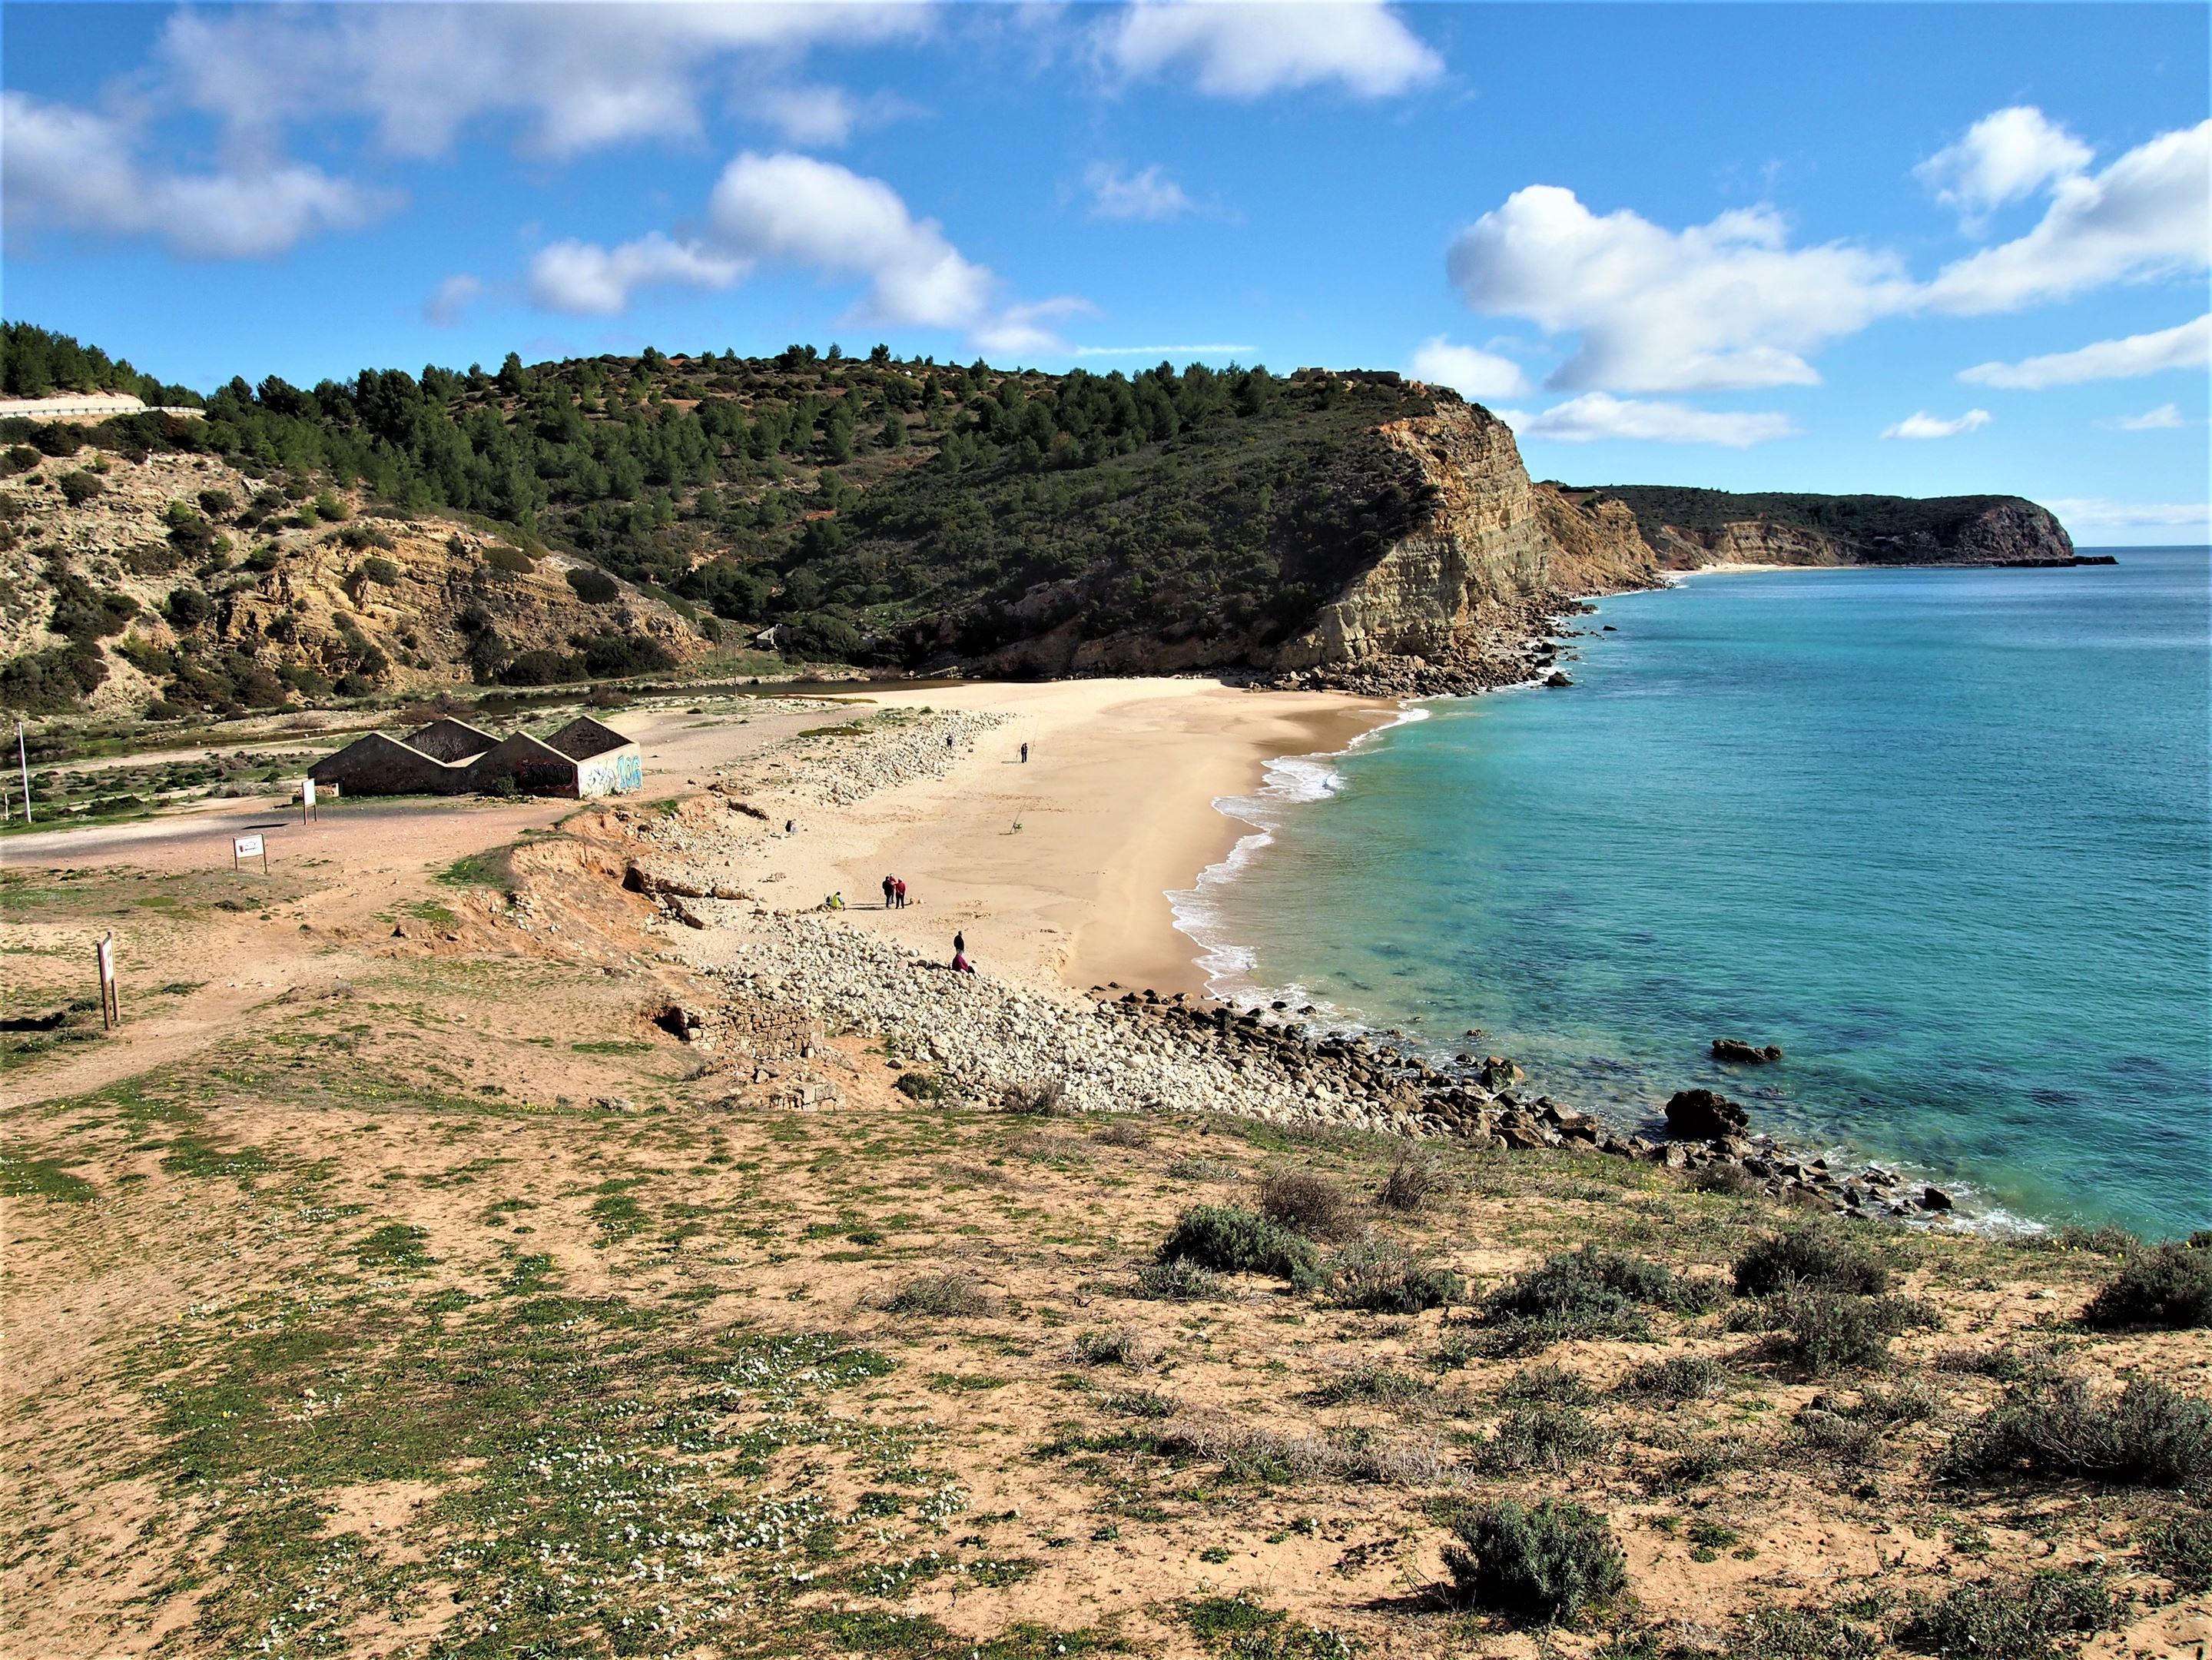 The coastline at Praia Boco do Rio, in the Costa Vicentina national park, Algarve